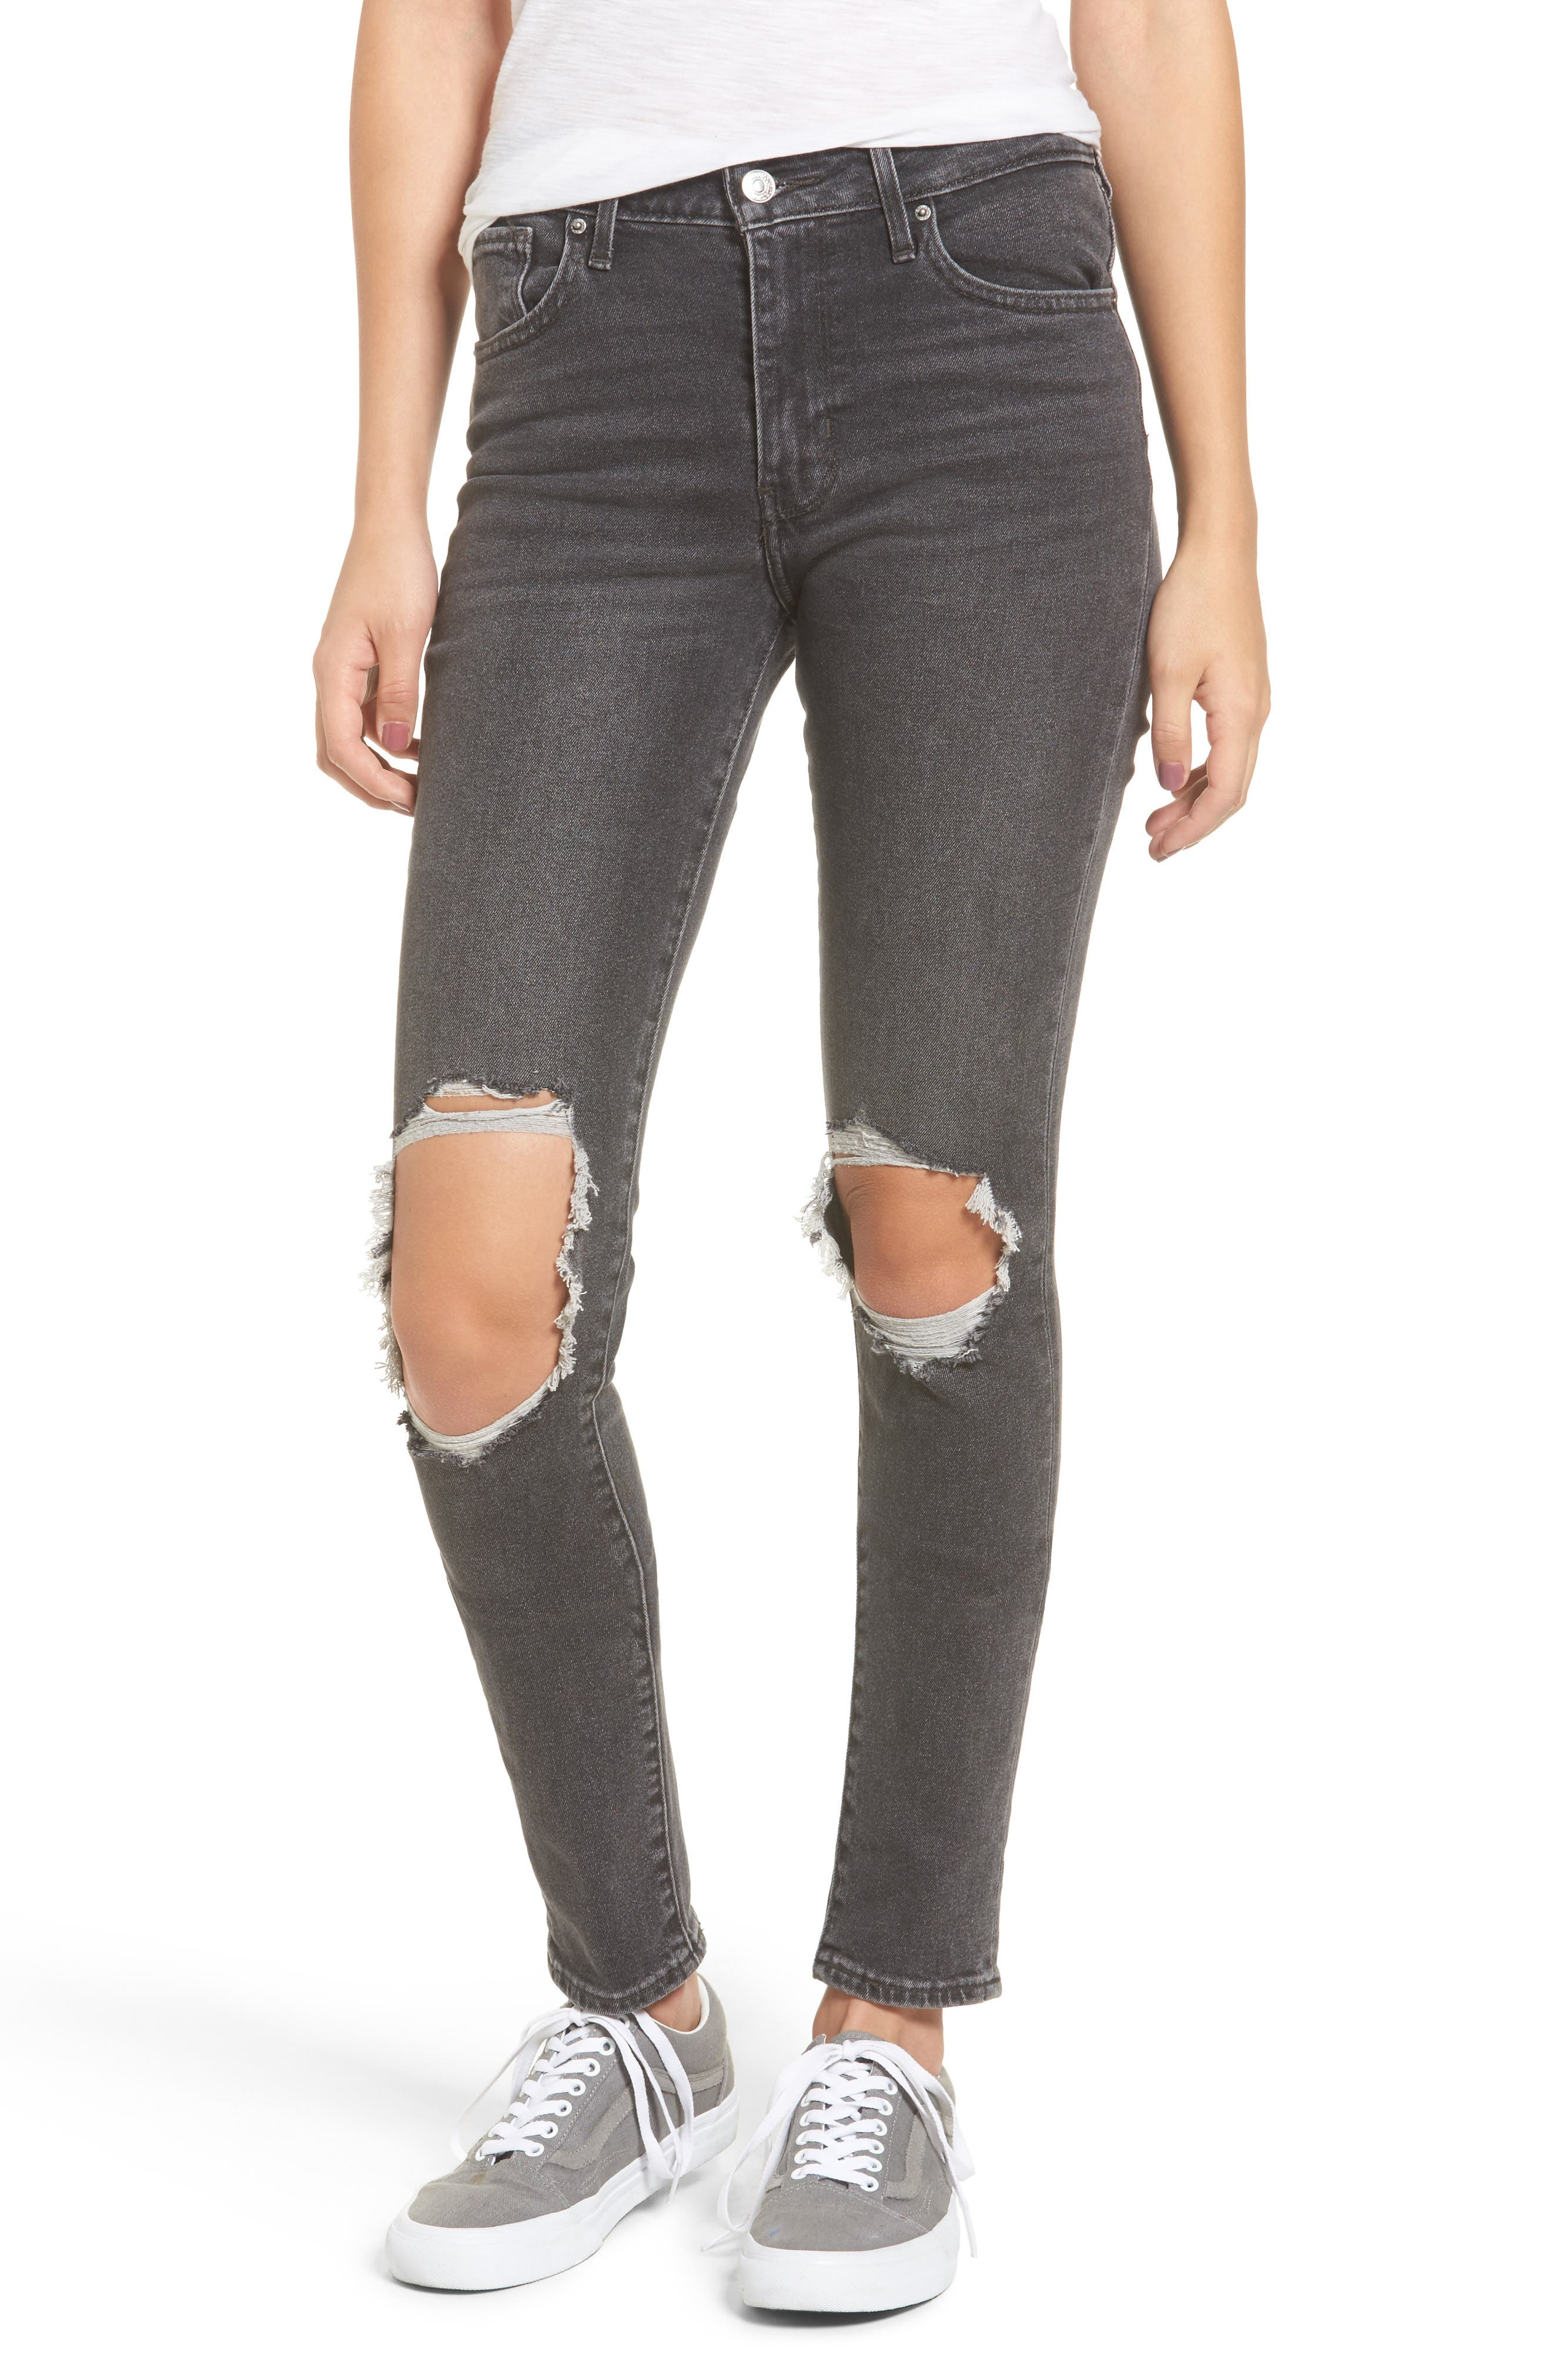 721 Ripped High Waist Skinny Jeans,                         Main,                         color, Rugged Black